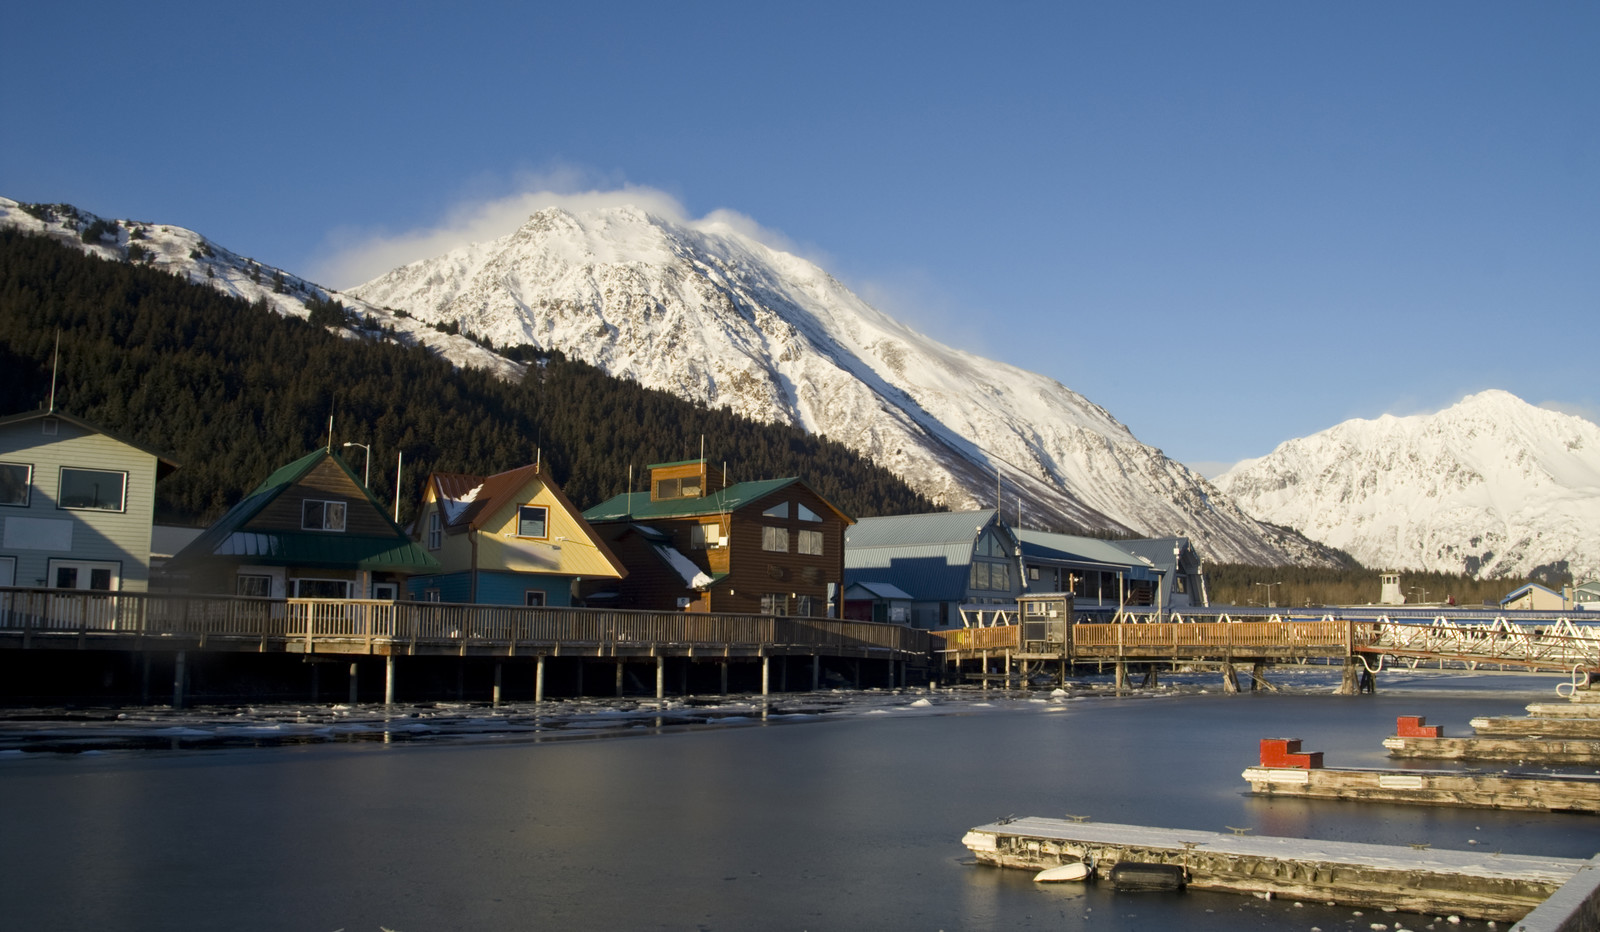 Seward Alaska With Homes along Resurrection Bay's harbor with snowy mountains in the background